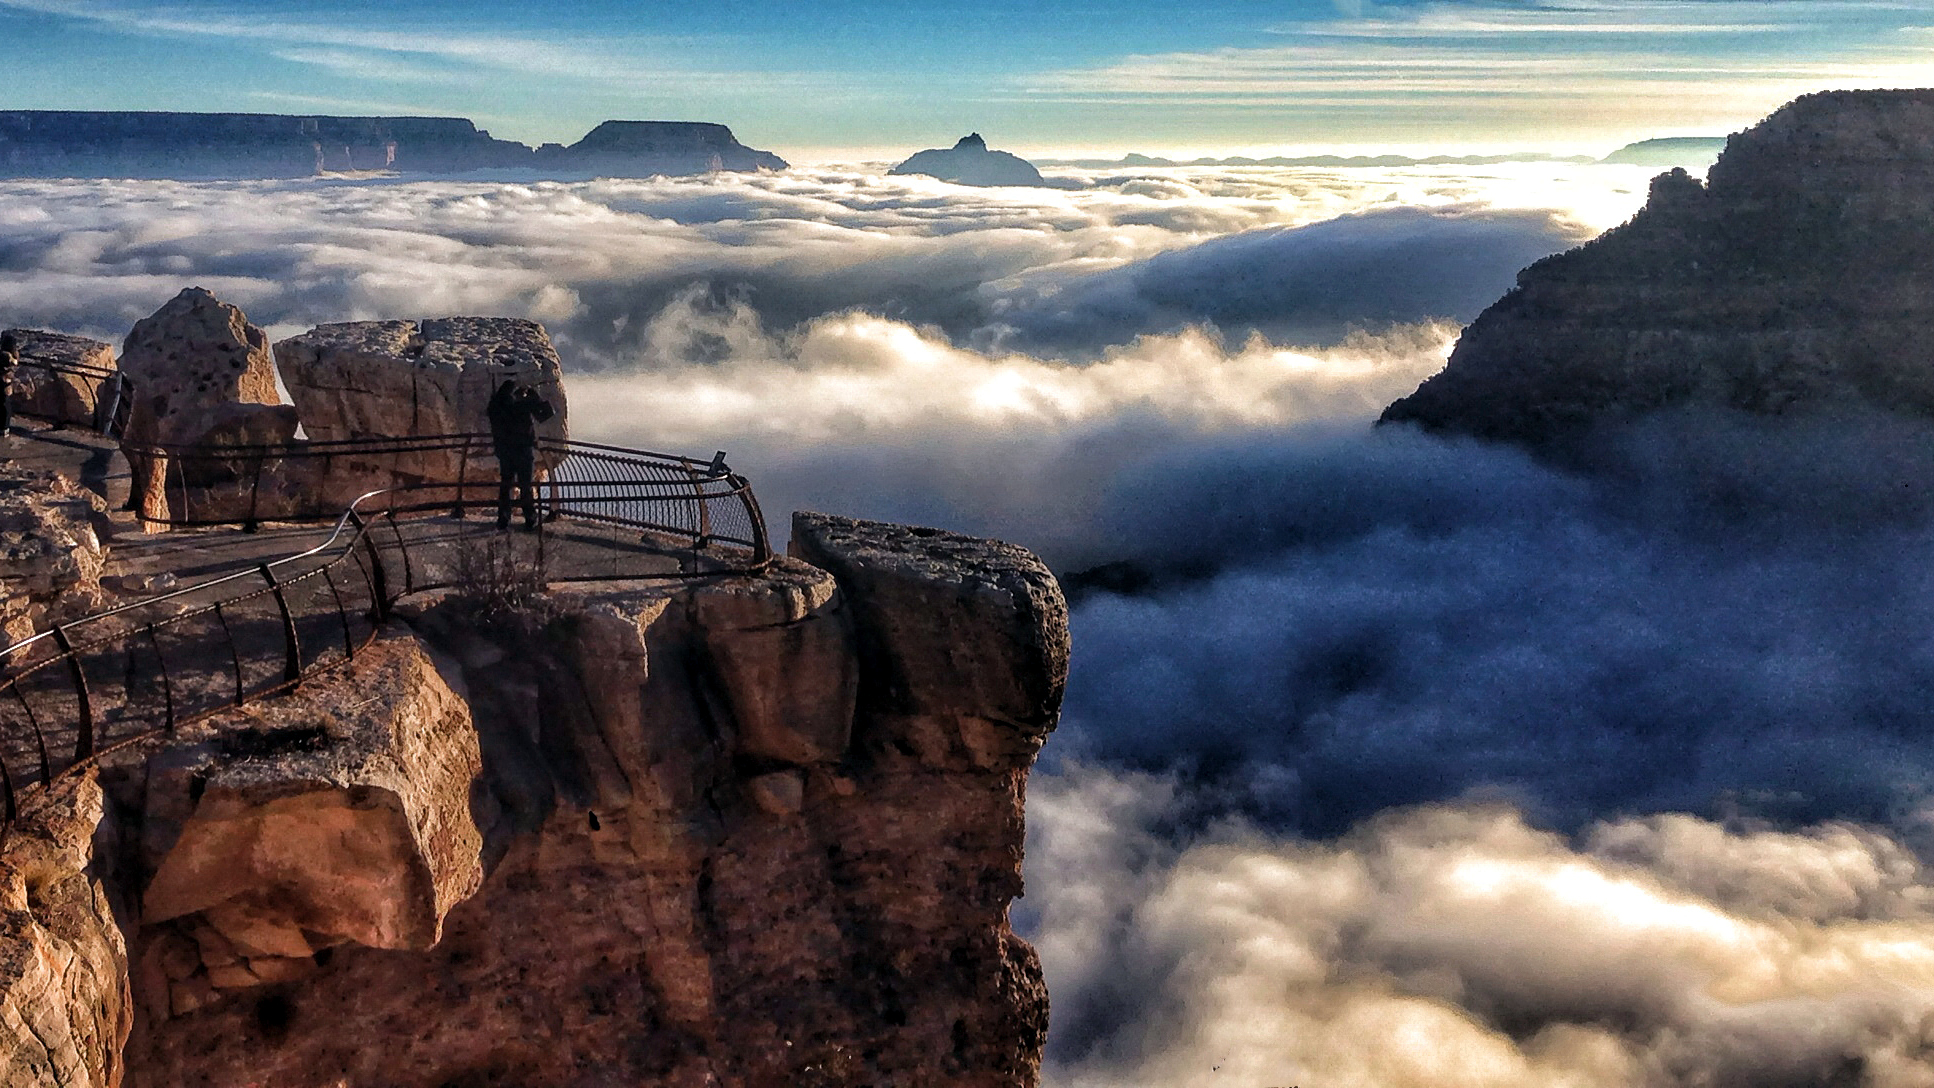 A rare total cloud inversion is pictured at Mather Point on the South Rim of the Grand Canyon National Park in Grand Canyon, Arizona November 29, 2013. Cloud inversions are formed through the interaction of warm and cold air masses. Picture taken November 29, 2013.